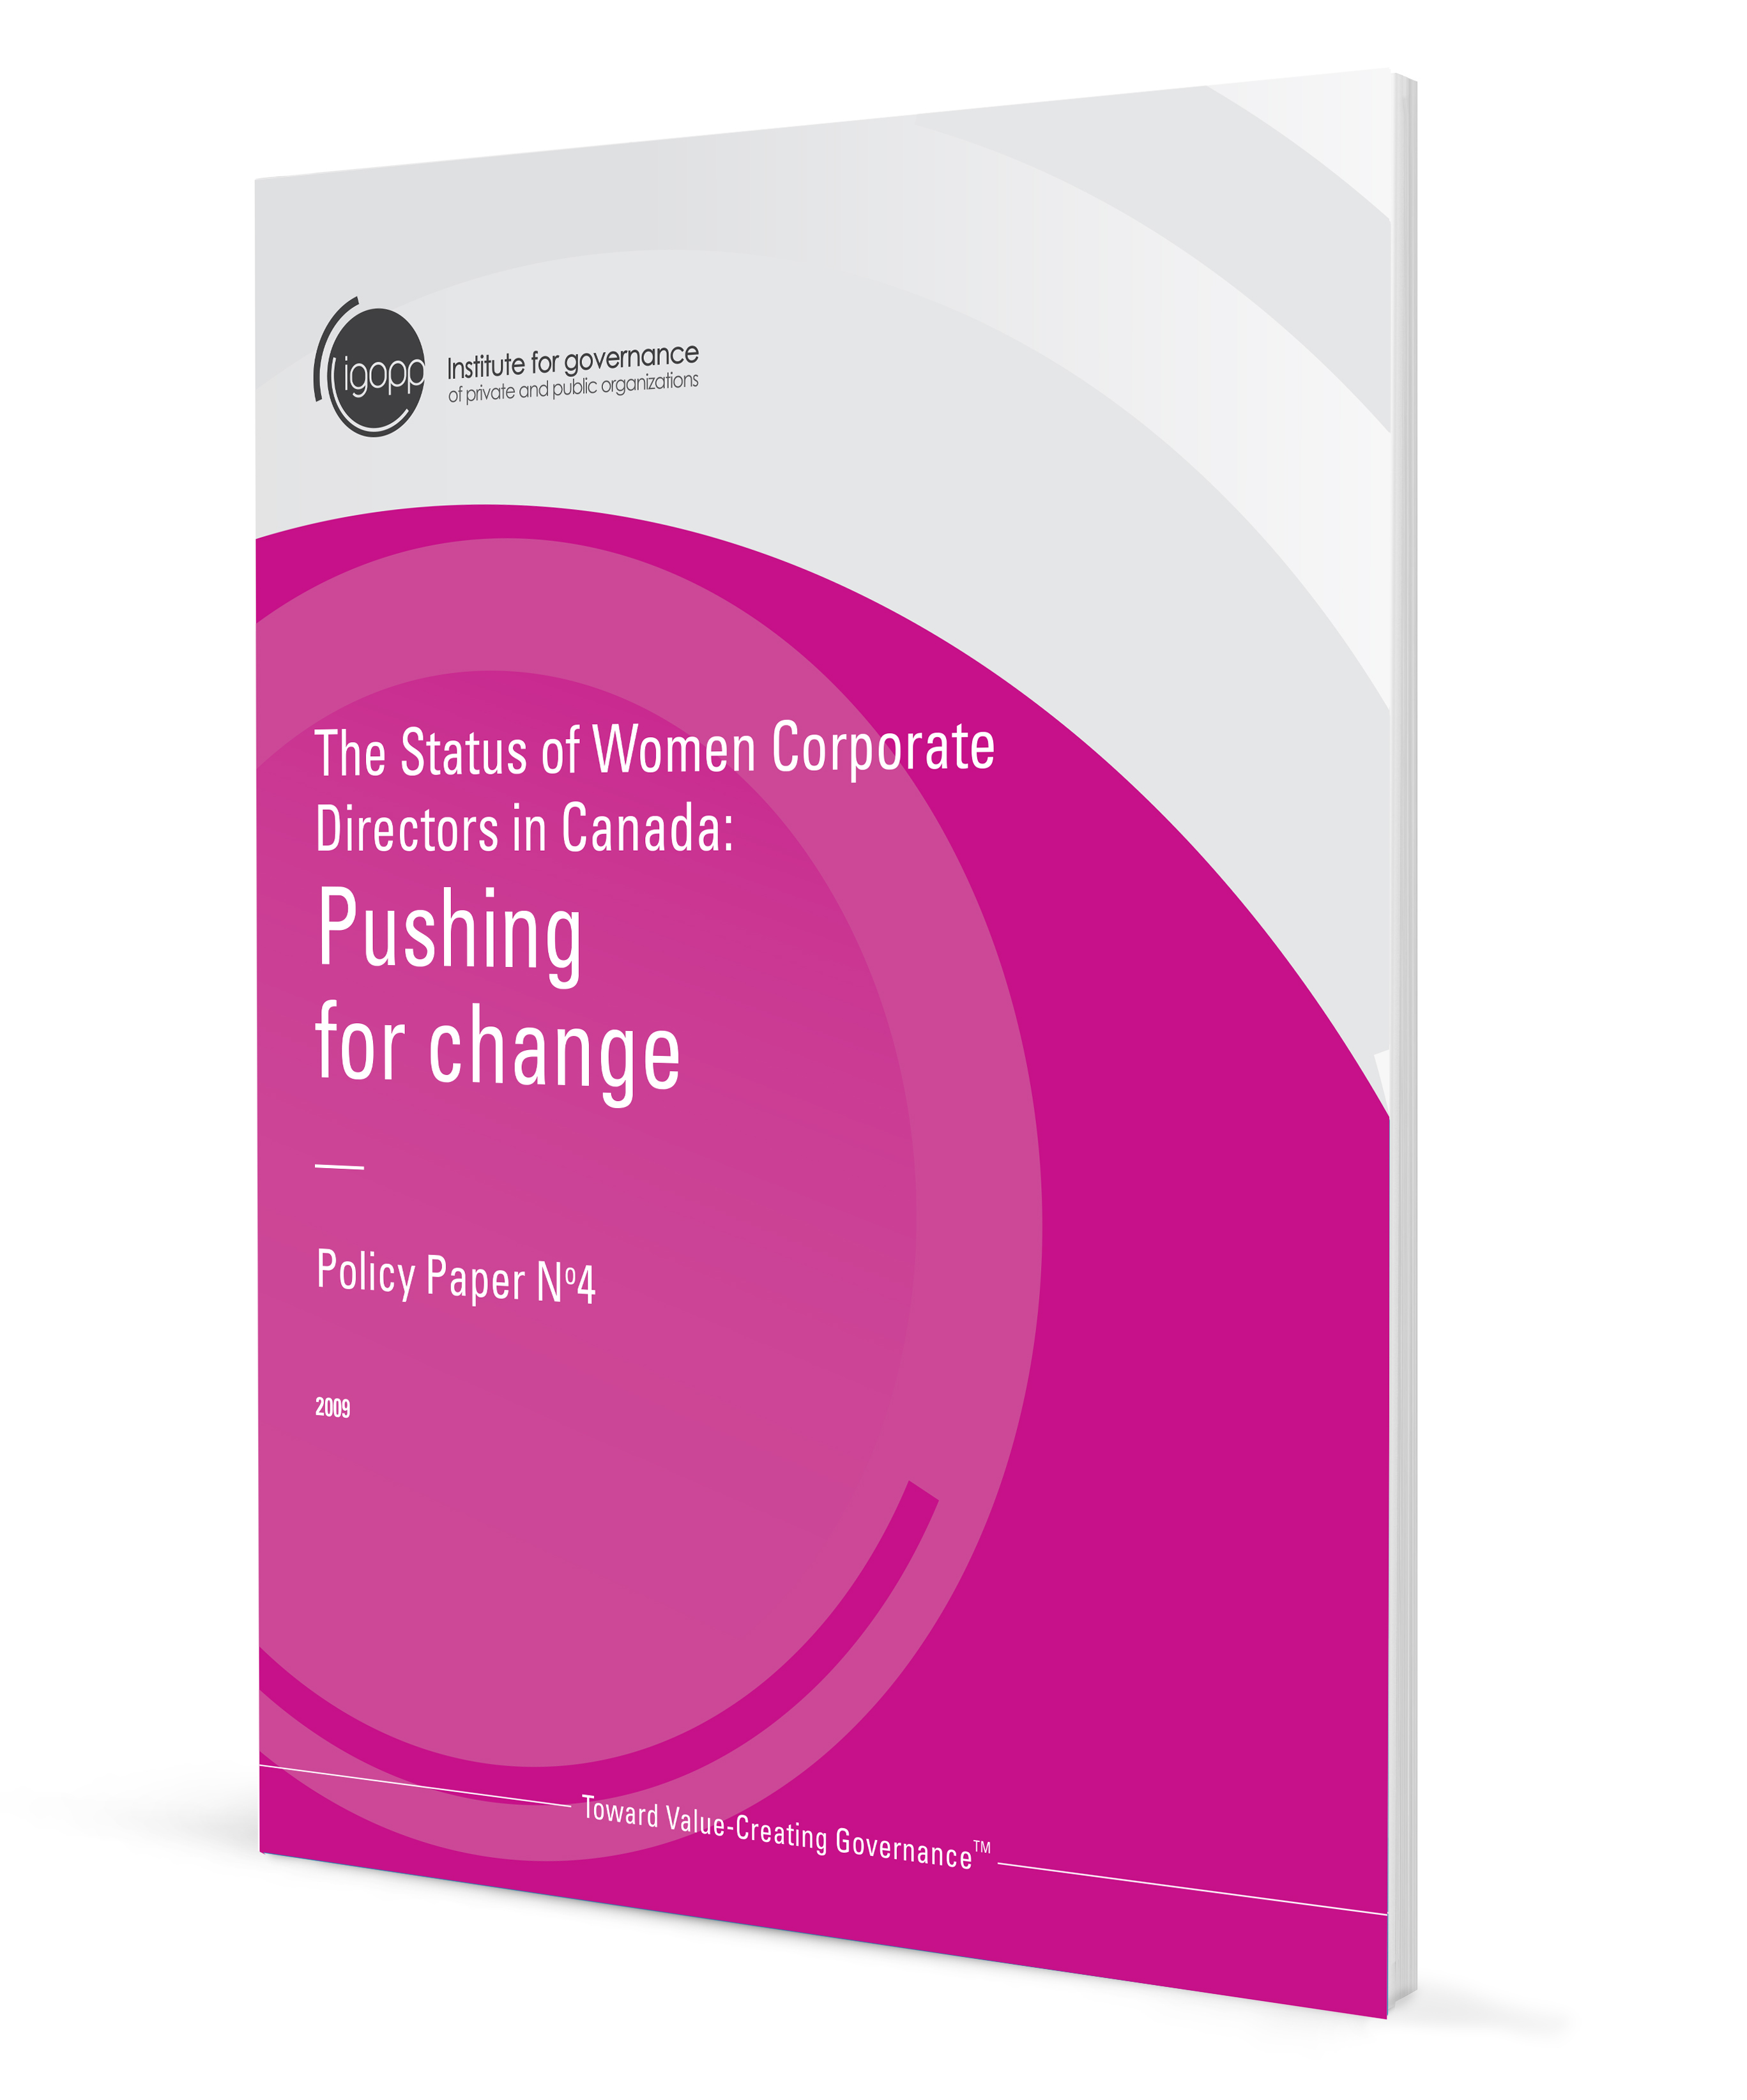 The Status of Women Corporate Directors in Canada